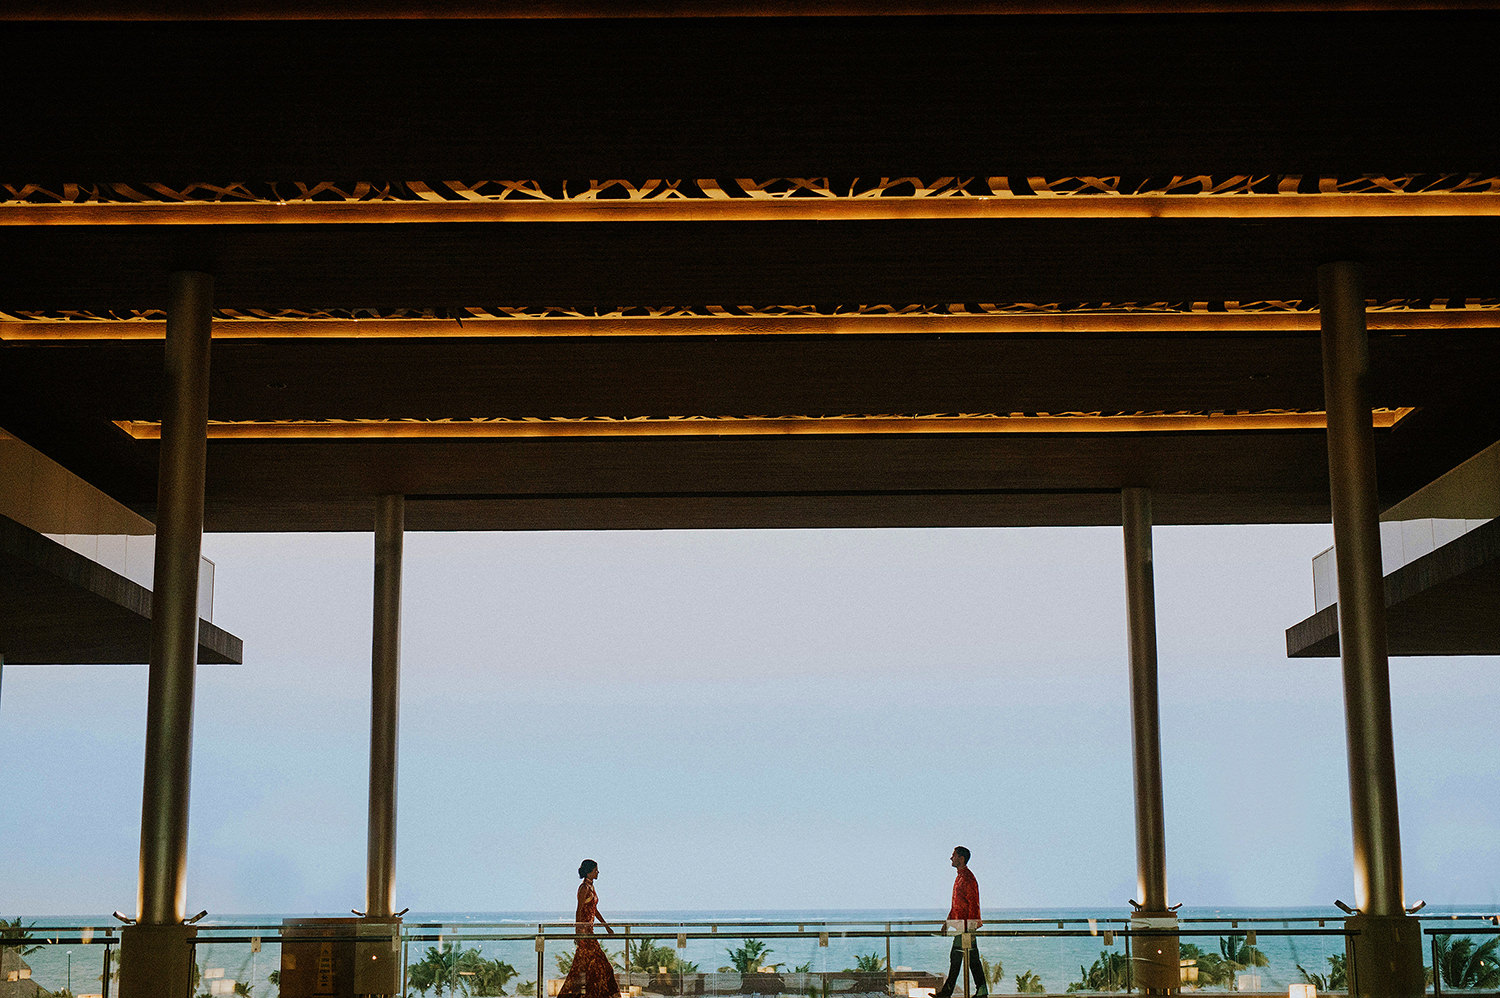 CherylReed_Wedding_Kape_Photography_WeddingPhotography_Mexico_Boda_Fotografia_Royalton_Hideway_Cancun_RivieraMaya_PlayadelCarmen_Beach_557FB_BLOG.jpg